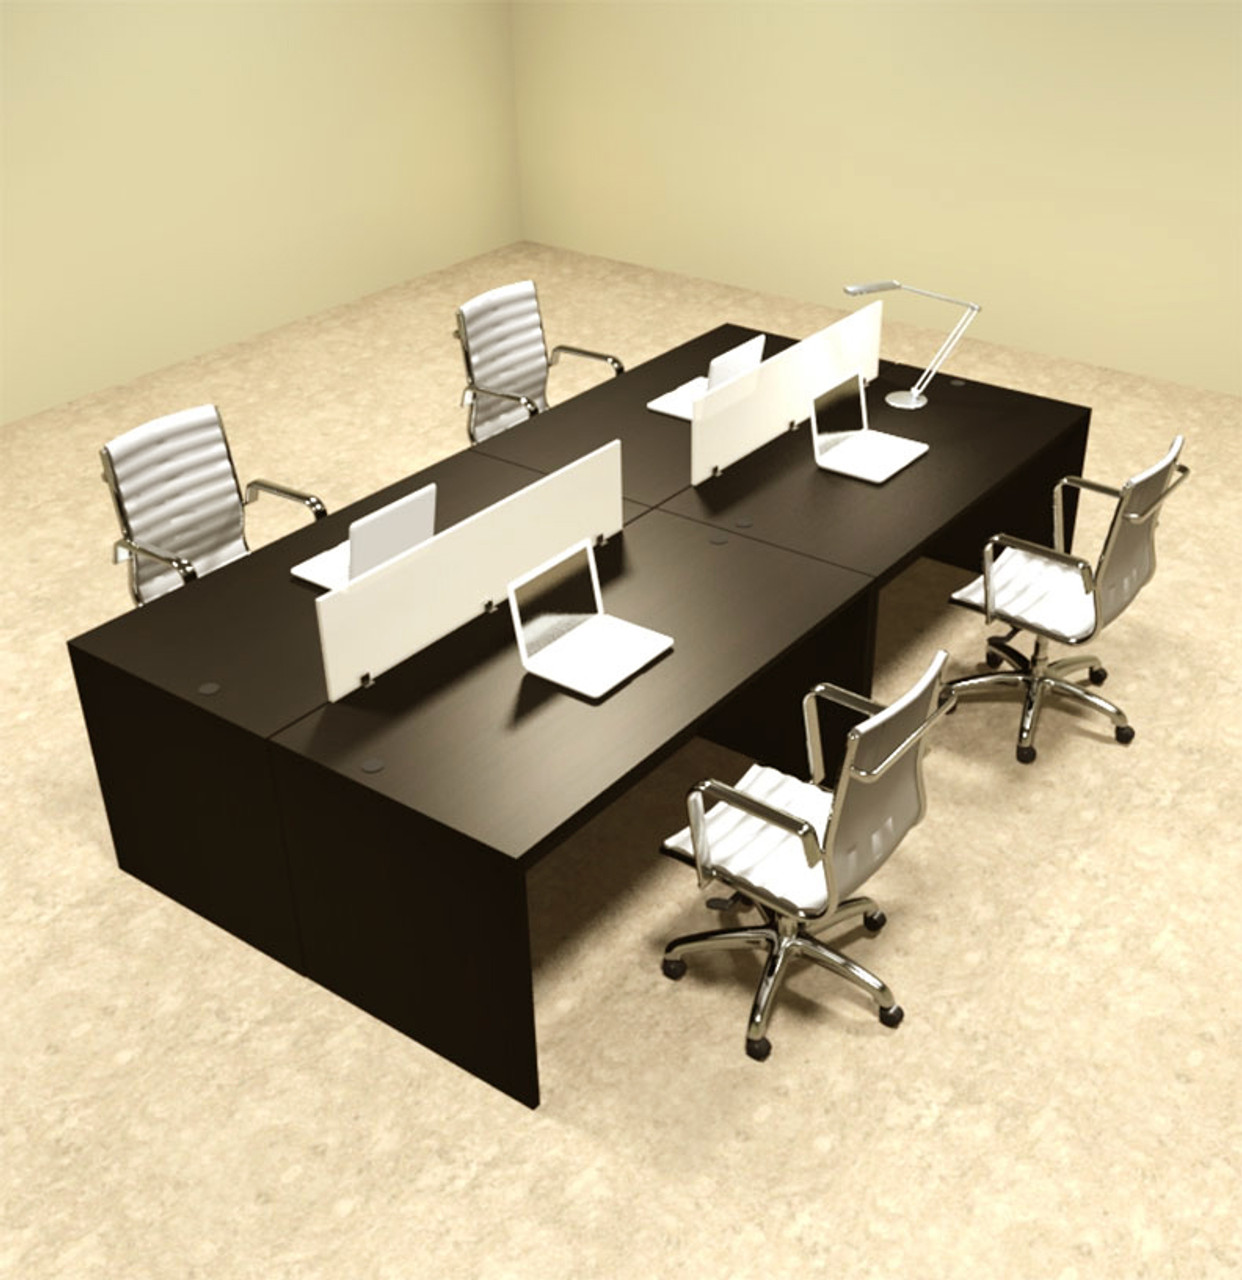 Office workstation desk Corporate Office Four Person Modern Divider Office Workstation Desk Set otsulfp8 Thesynergistsorg Four Person Modern Divider Office Workstation Desk Set otsulfp8